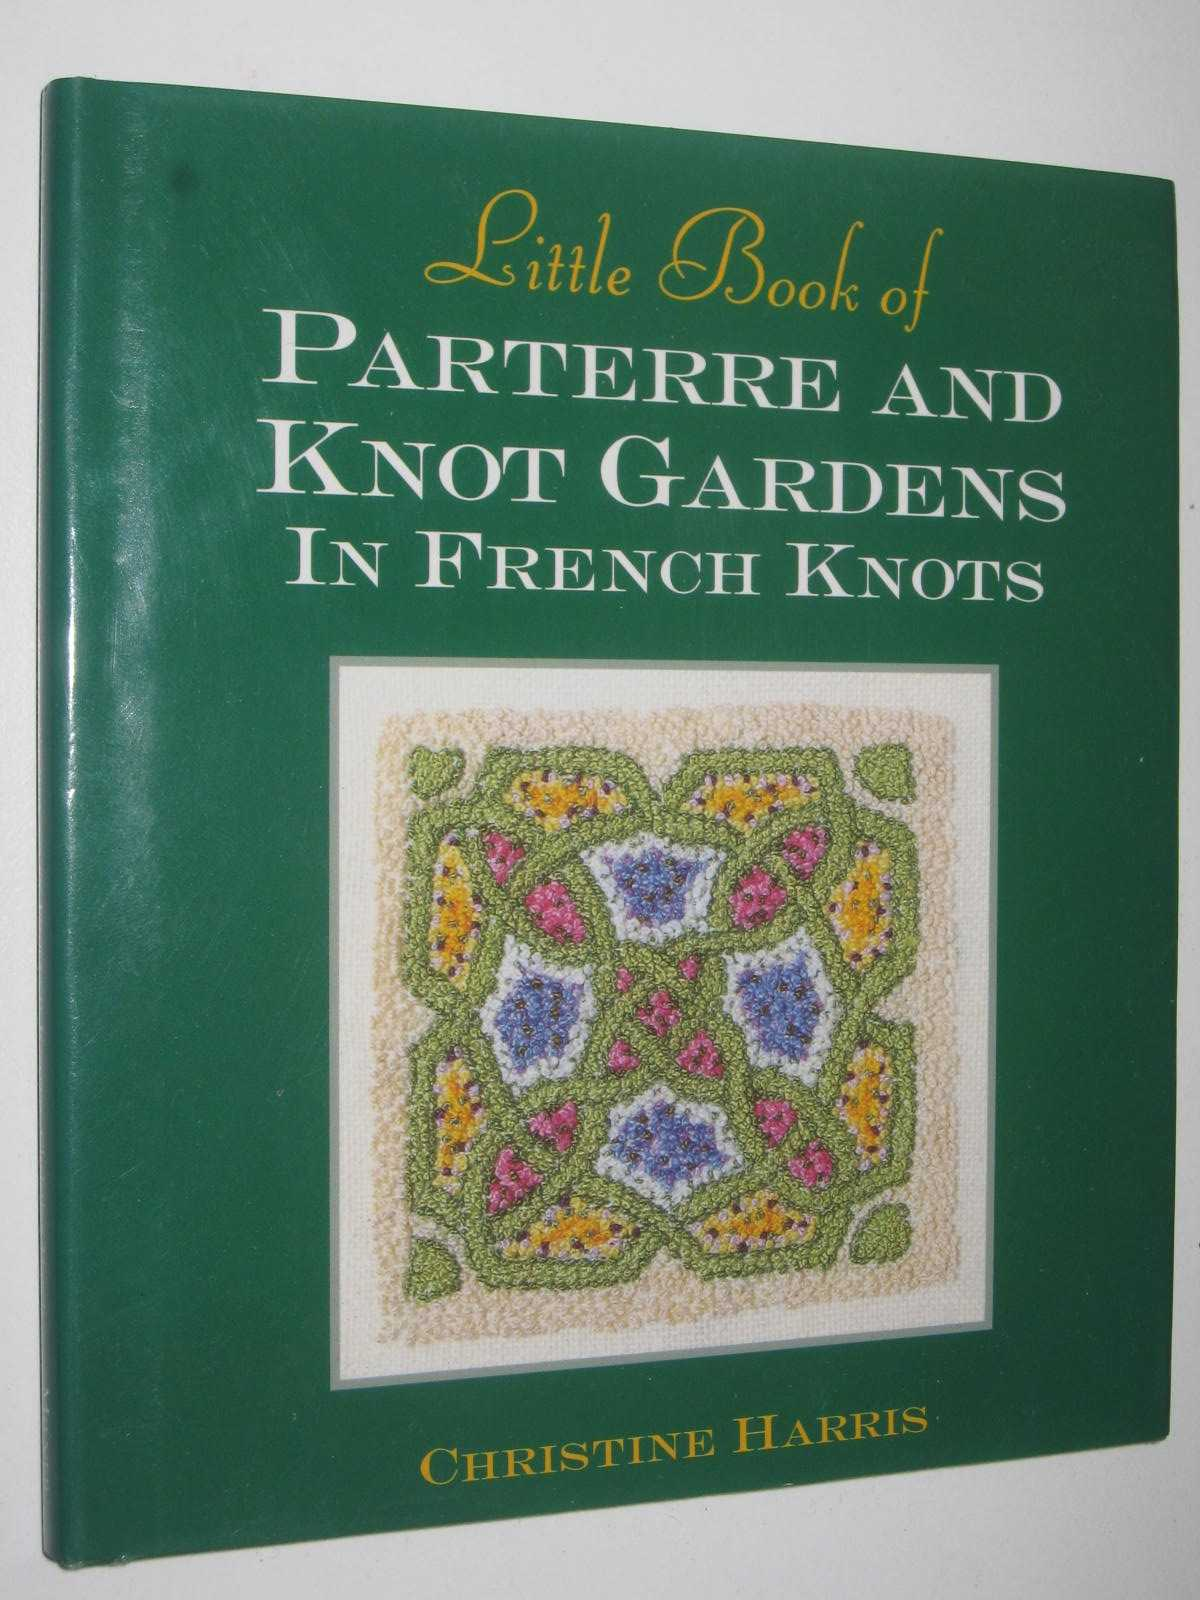 Image for Little Book of Parterre and Knot Gardens in French Knots